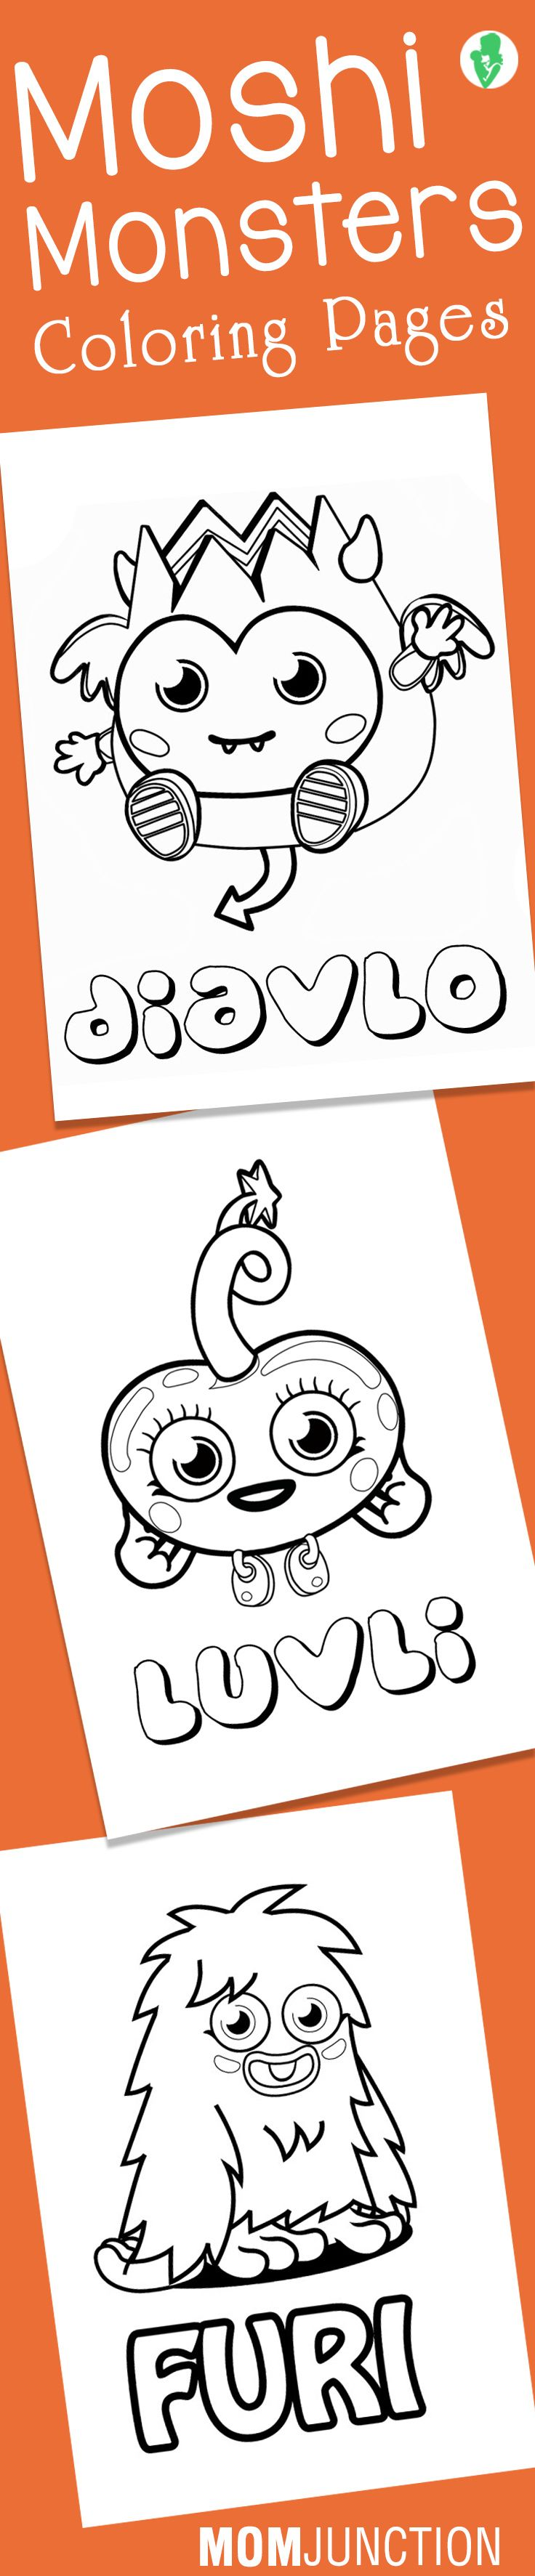 Top 10 Moshi Monsters Coloring Pages For Your Little Ones